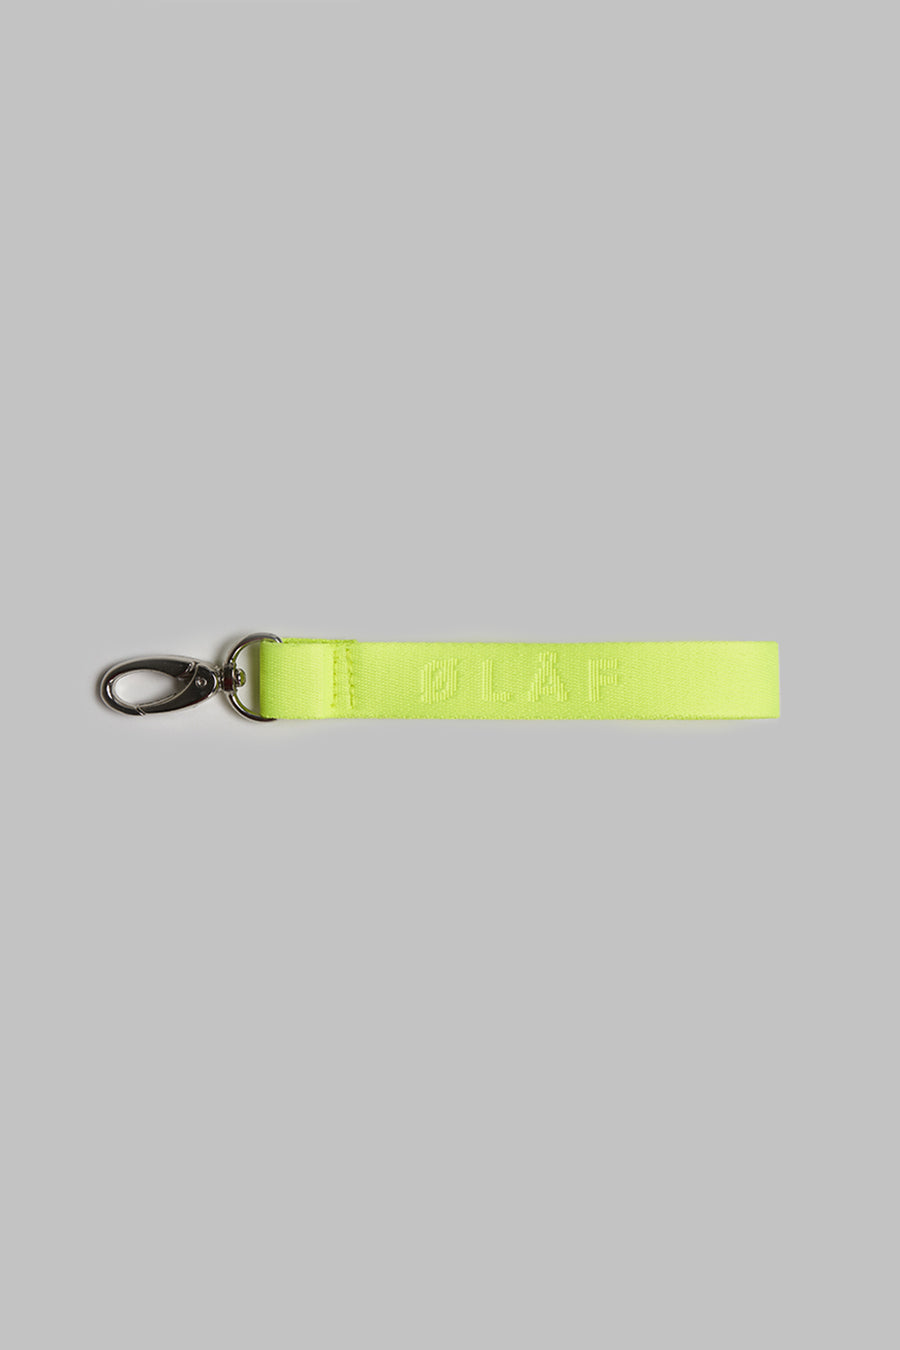 ØLÅF Key Hanger <br>Neon Yellow